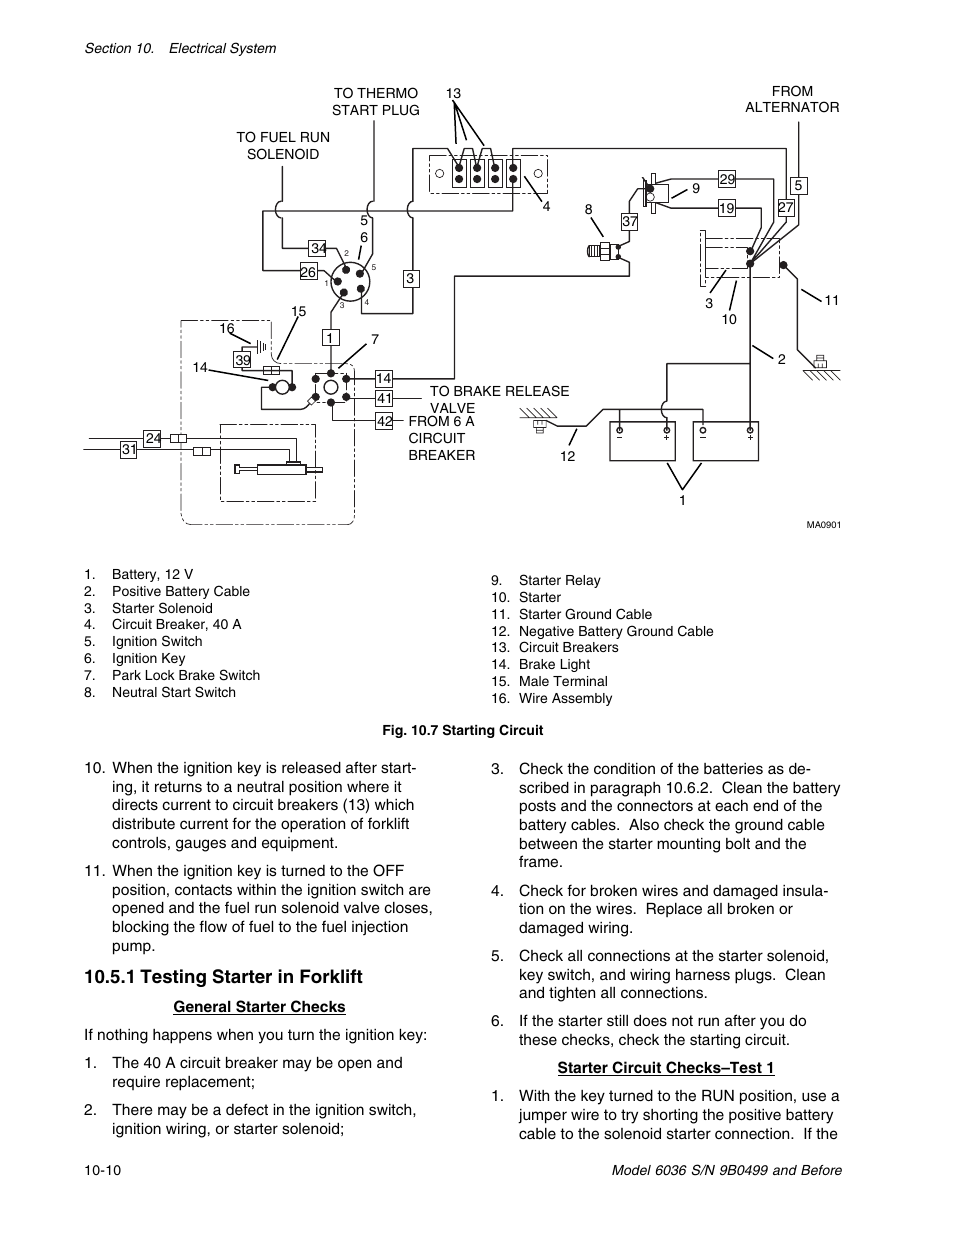 skytrak 6036 service manual page204 1 testing starter in forklift skytrak 6036 service manual user